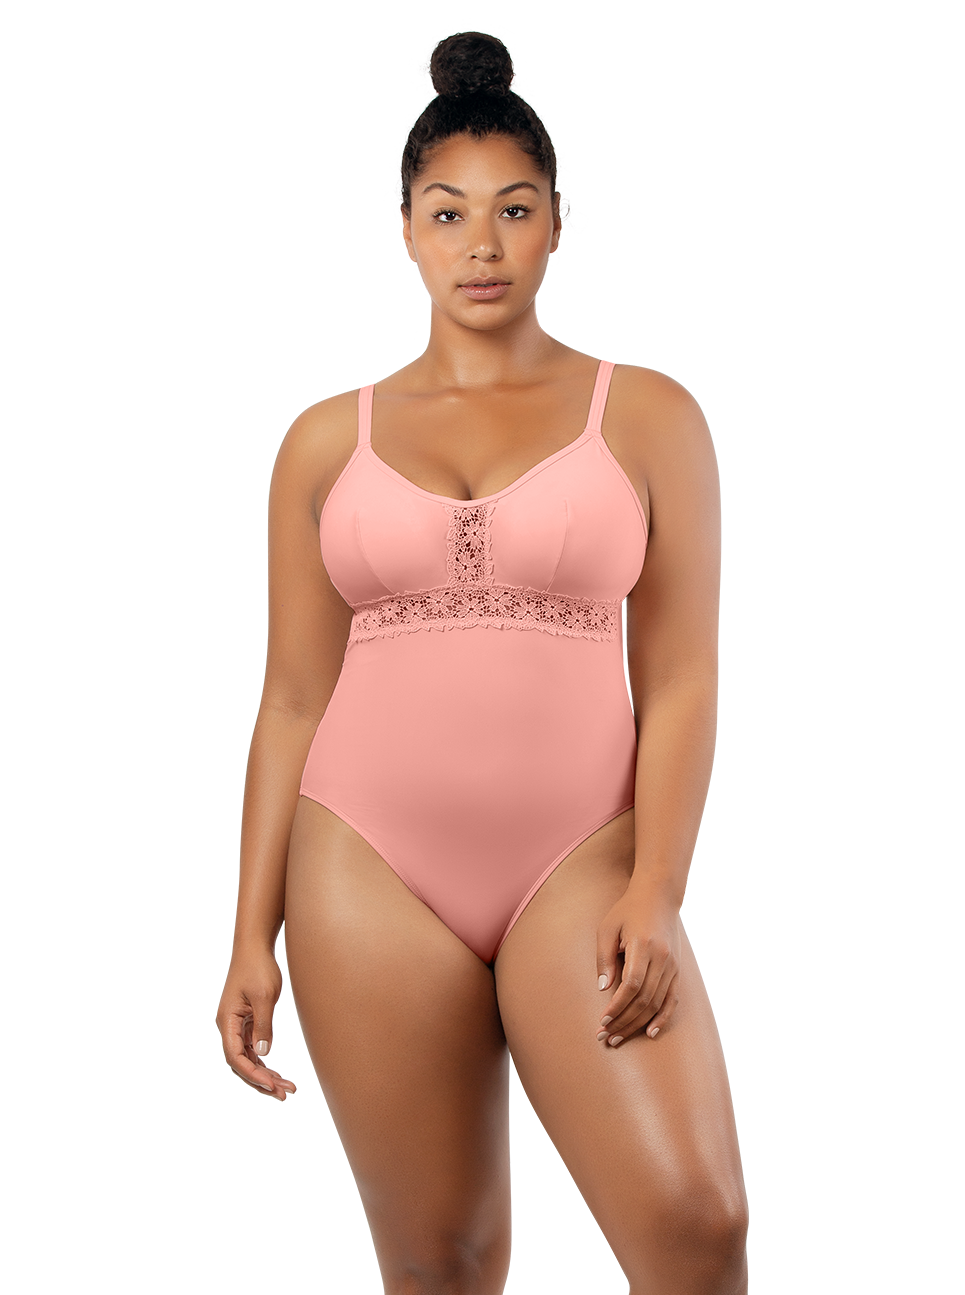 PARFAIT Brigitte OnePieceSwimsuitS8206 PeachBud Front2 - Brigitte One Piece Swimsuit Peach Bud S8206